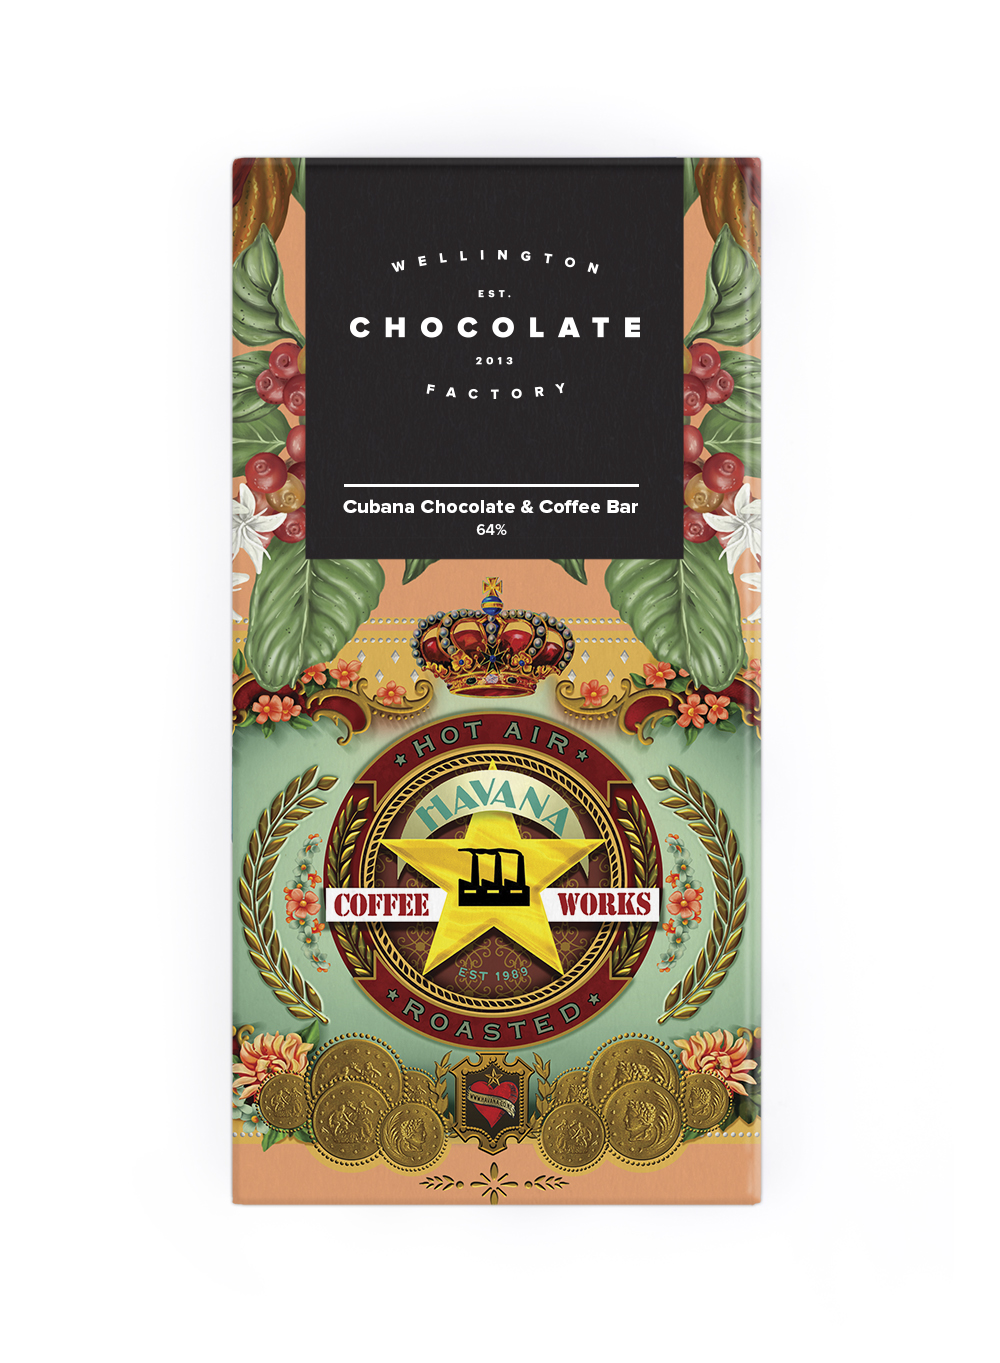 Cubana Chocolate & Coffee Bar - Cuban coffee beans from Havana Coffee Works mixed with Cuban cacao.